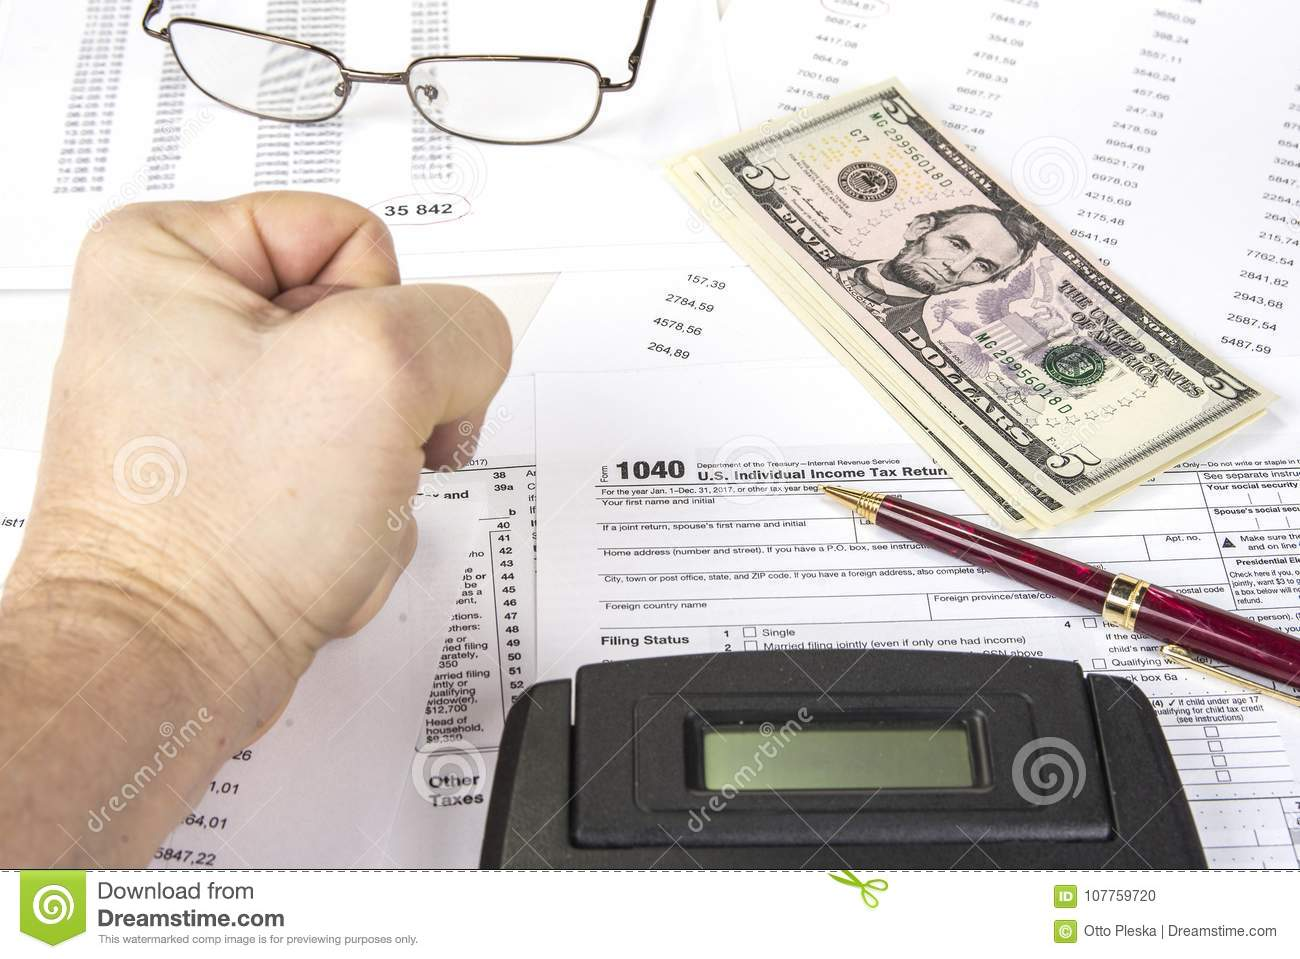 Calculating numbers for income tax return with pen, glasses and calculator.